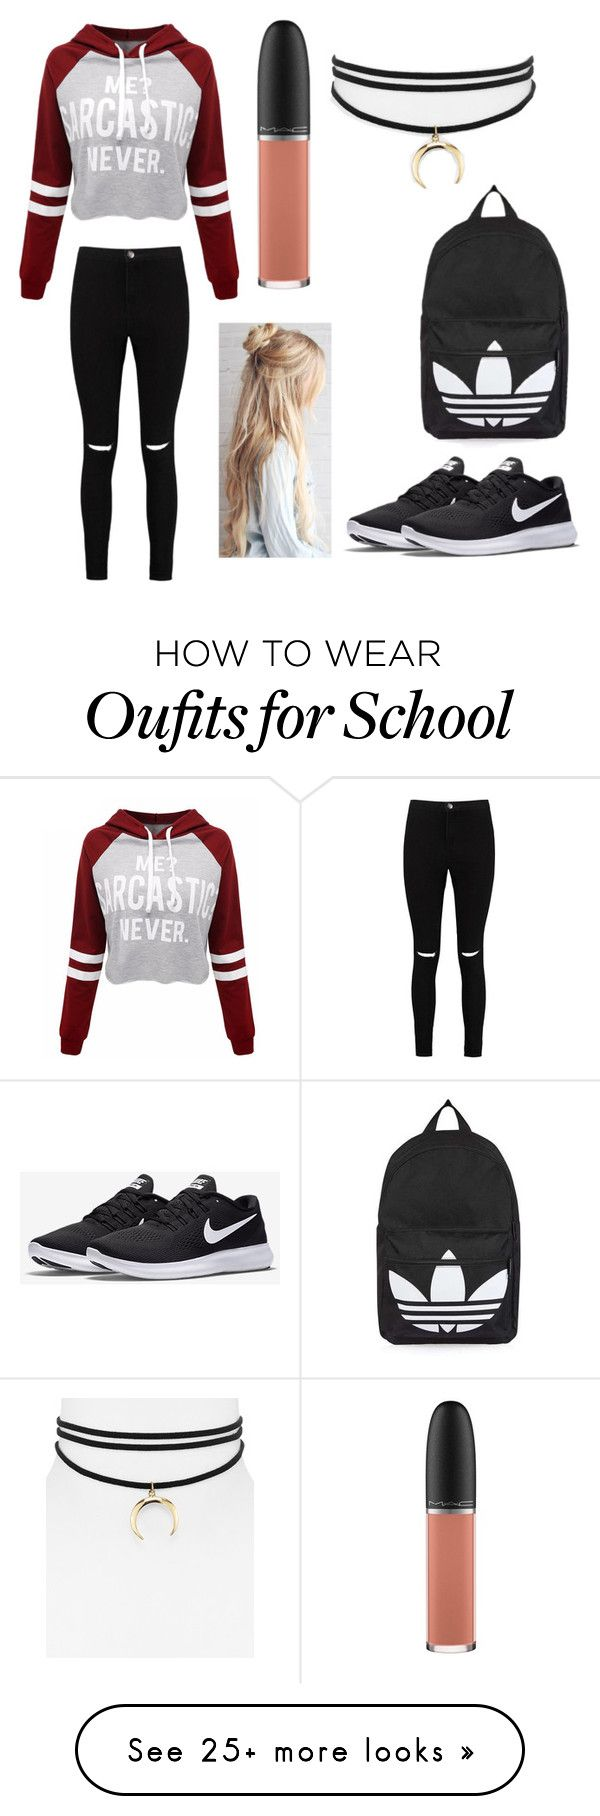 """""""High school"""" by cjmengel-2 on Polyvore featuring WithChic, Boohoo, NIKE, Topshop, MAC Cosmetics and Jules Smith"""